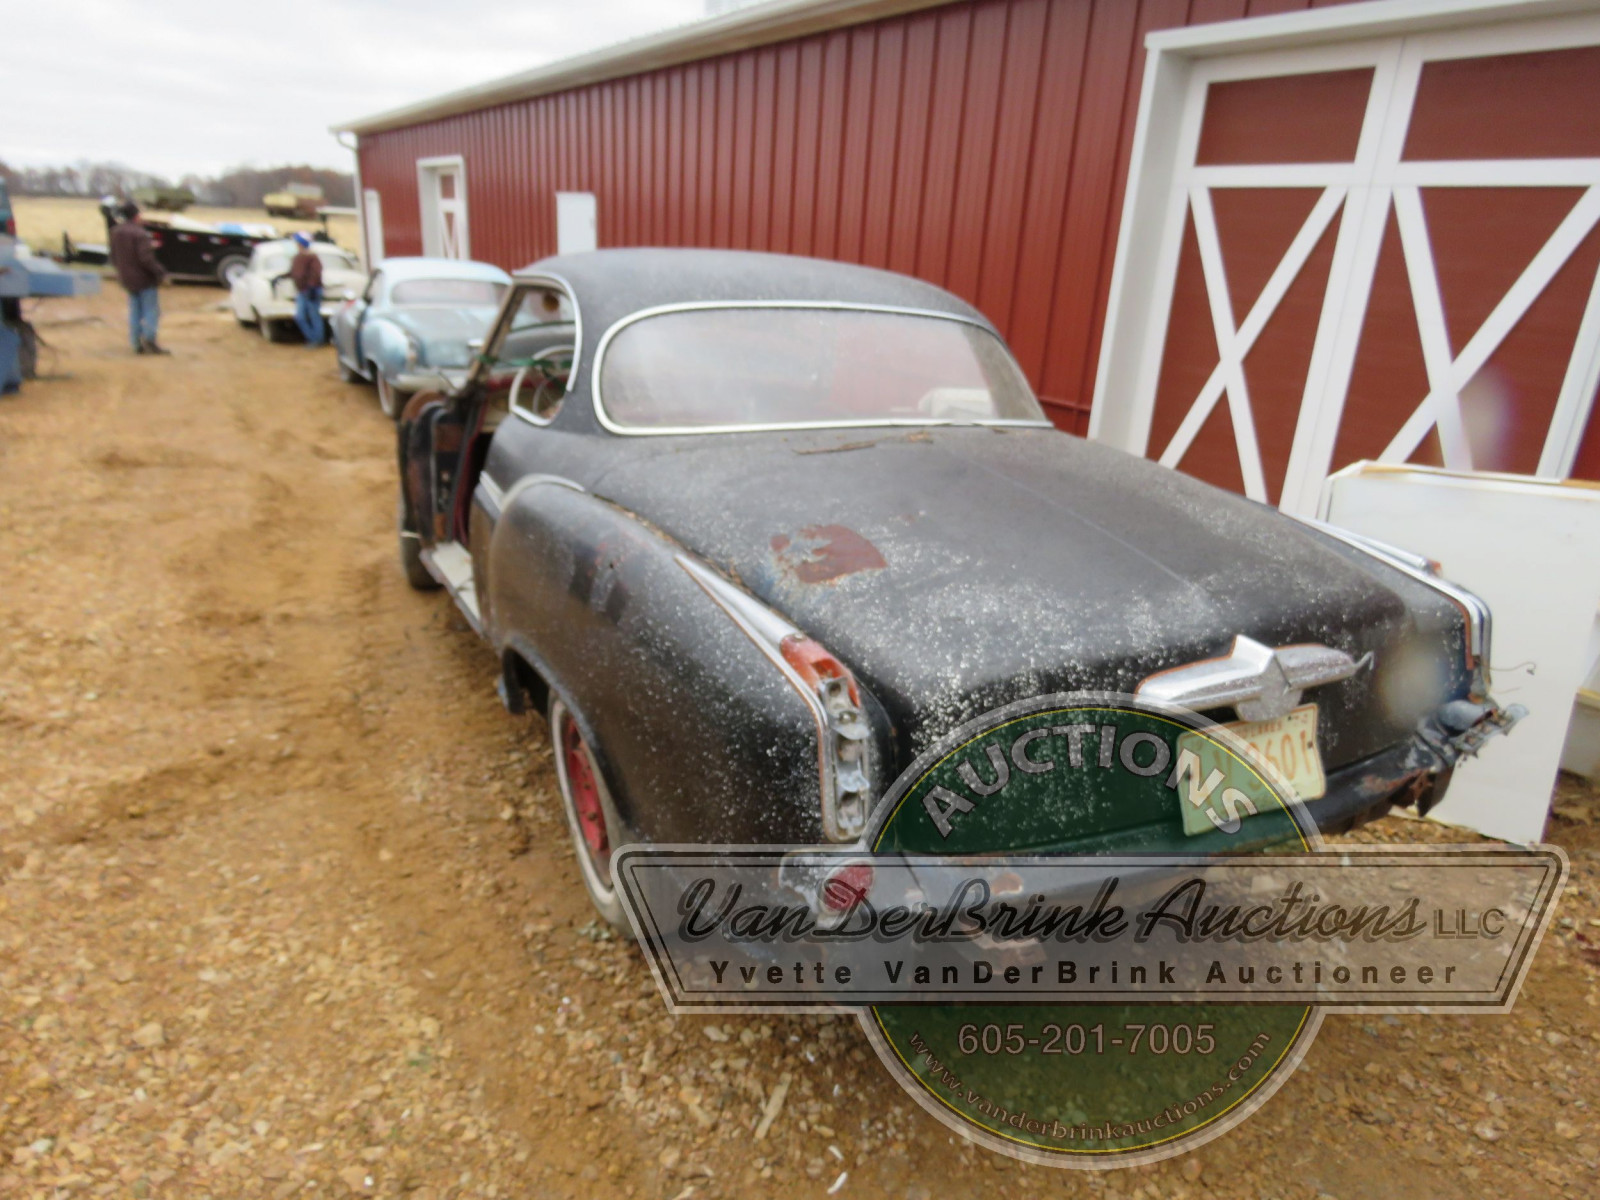 Borgward Coupe for project or parts - Image 7